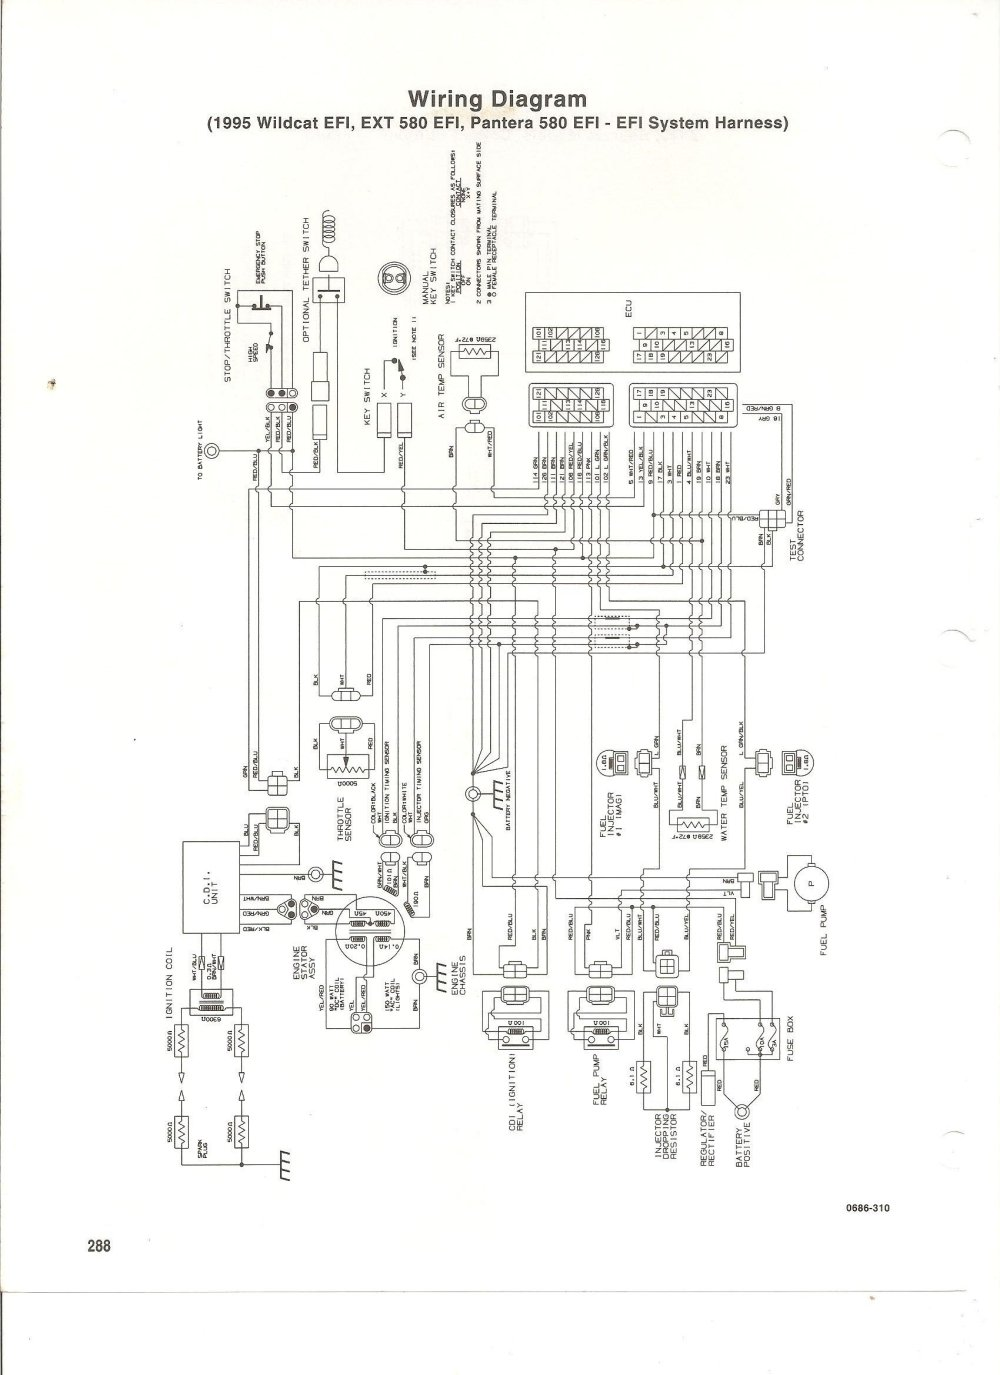 medium resolution of 93 wildcat wiring diagram wiring diagram portal gmc fuse box diagrams 1988 wildcat wiring diagram source 2006 wildcat camper